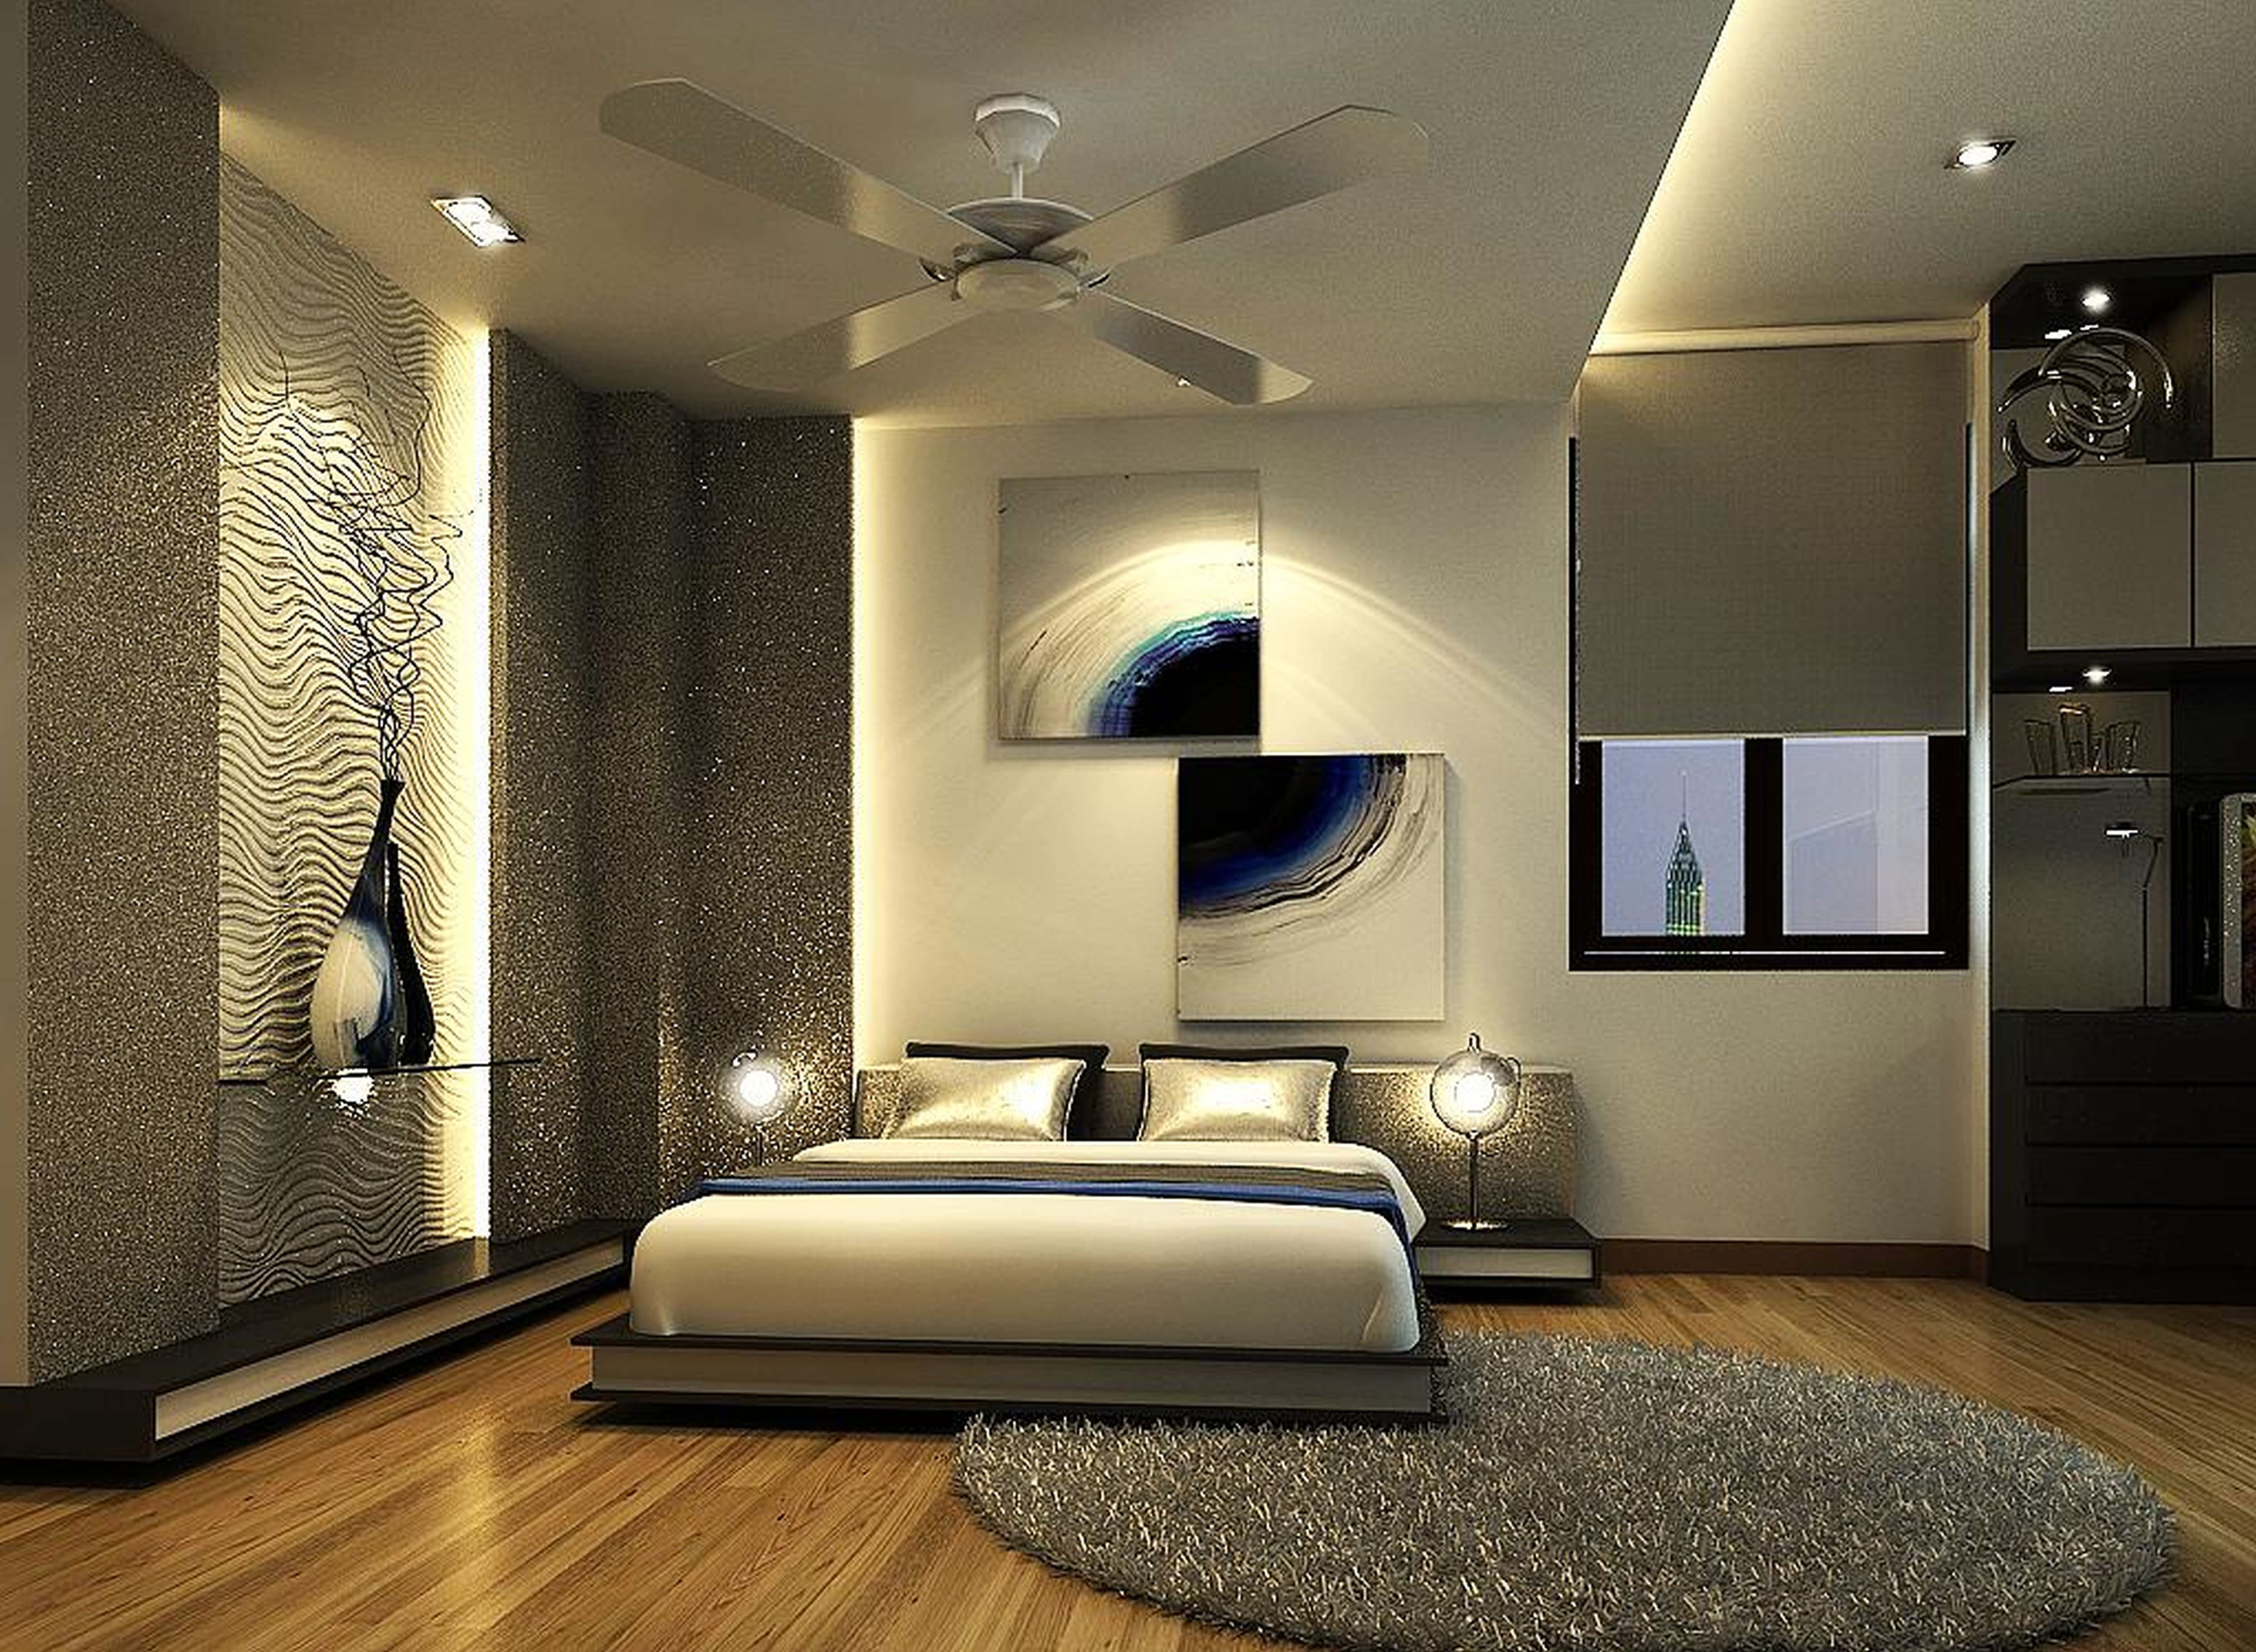 Top BedRoom Design For Royal Look